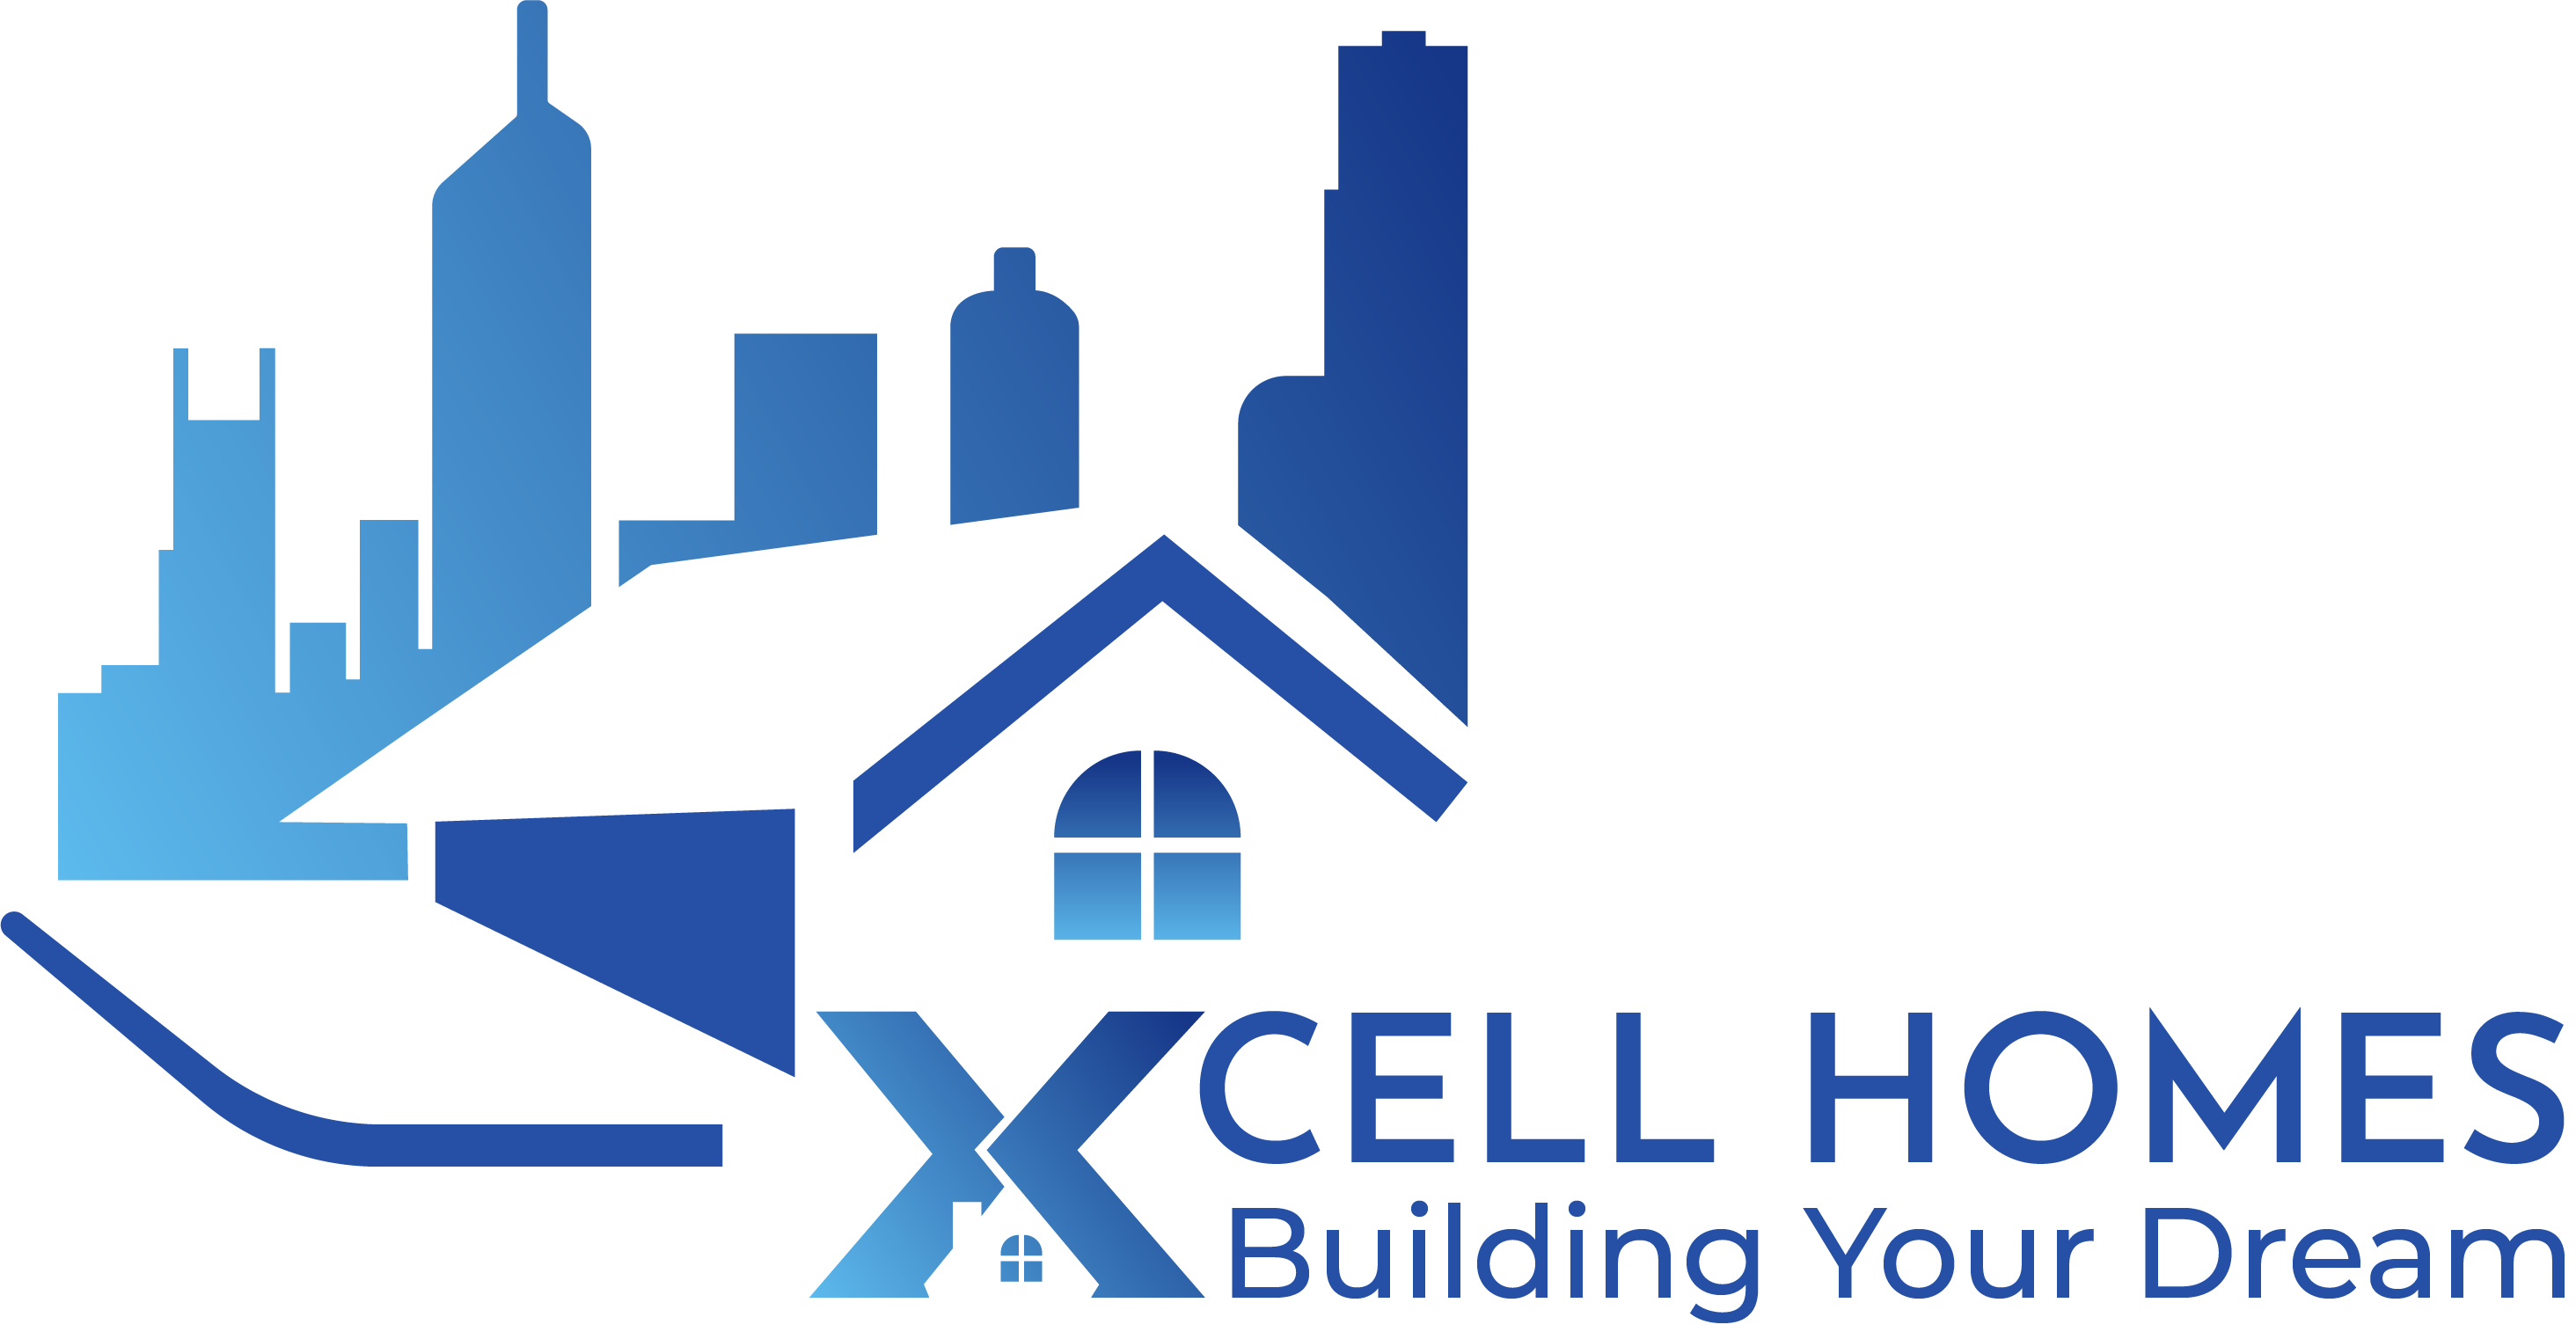 Xcell Homes